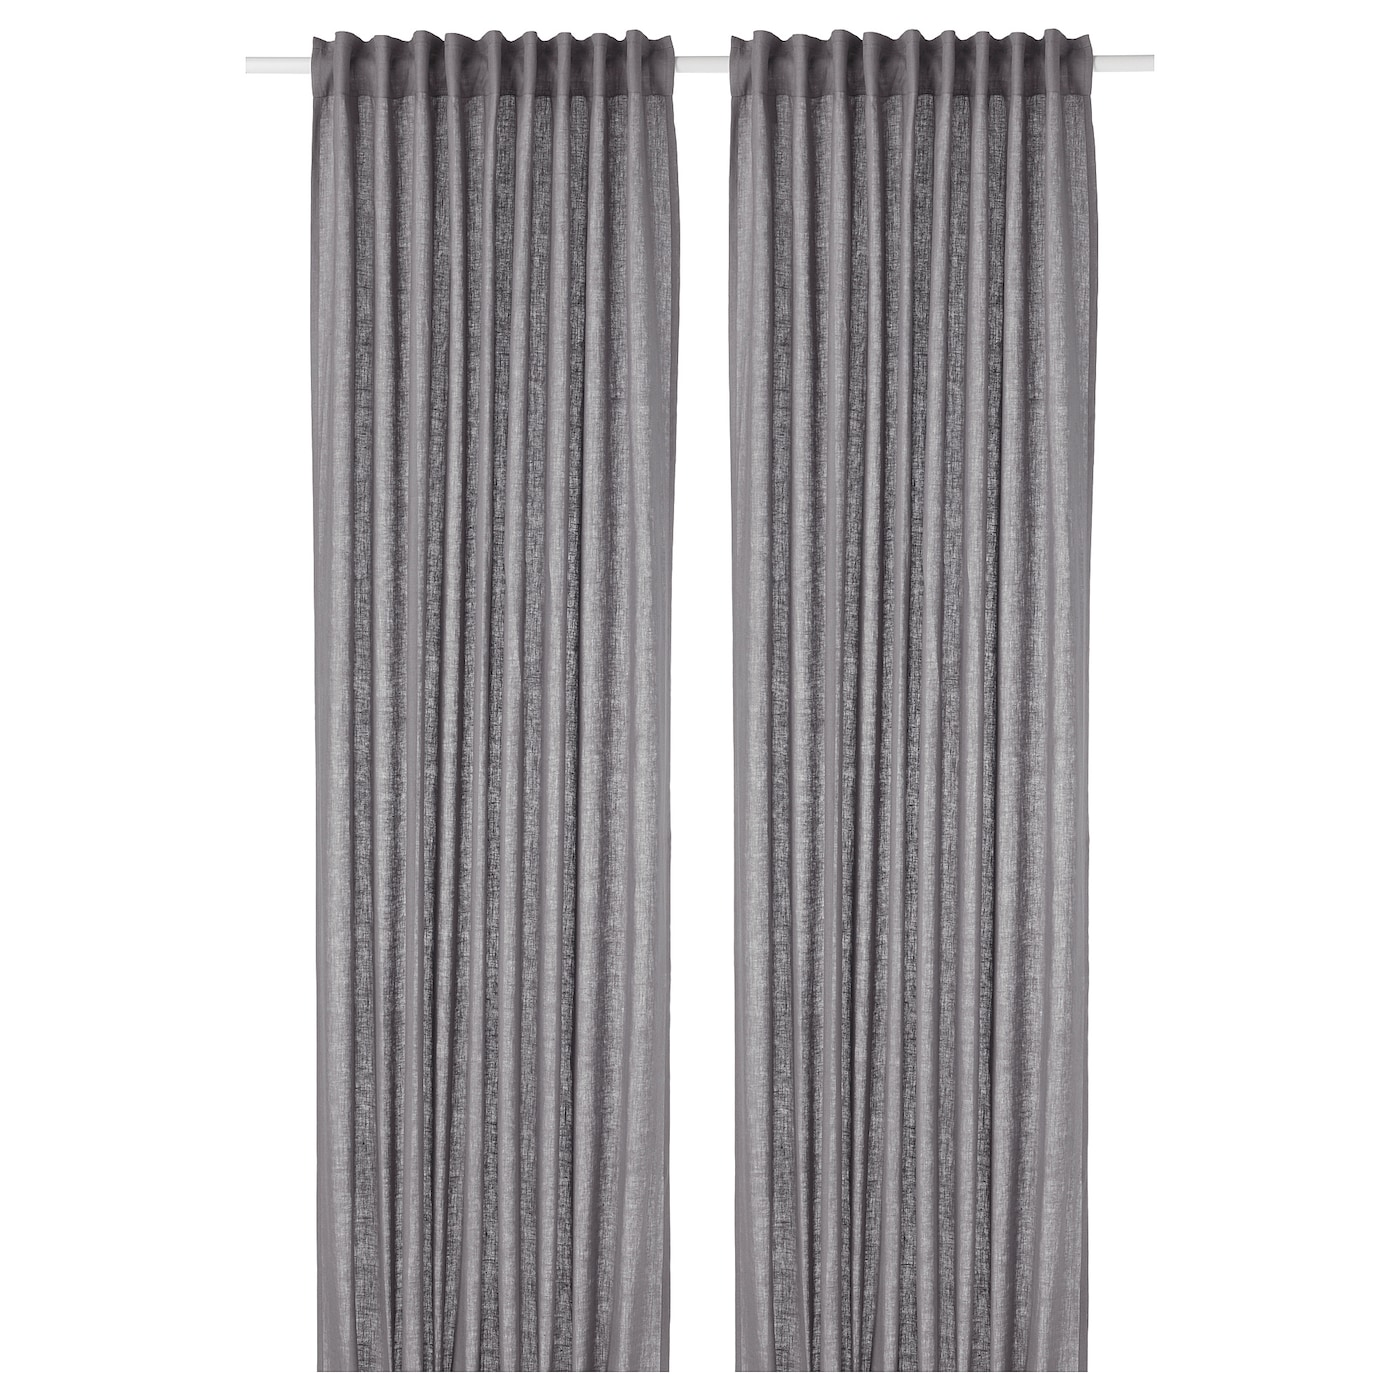 Aina Curtains 1 Pair Dark Gray Ikea